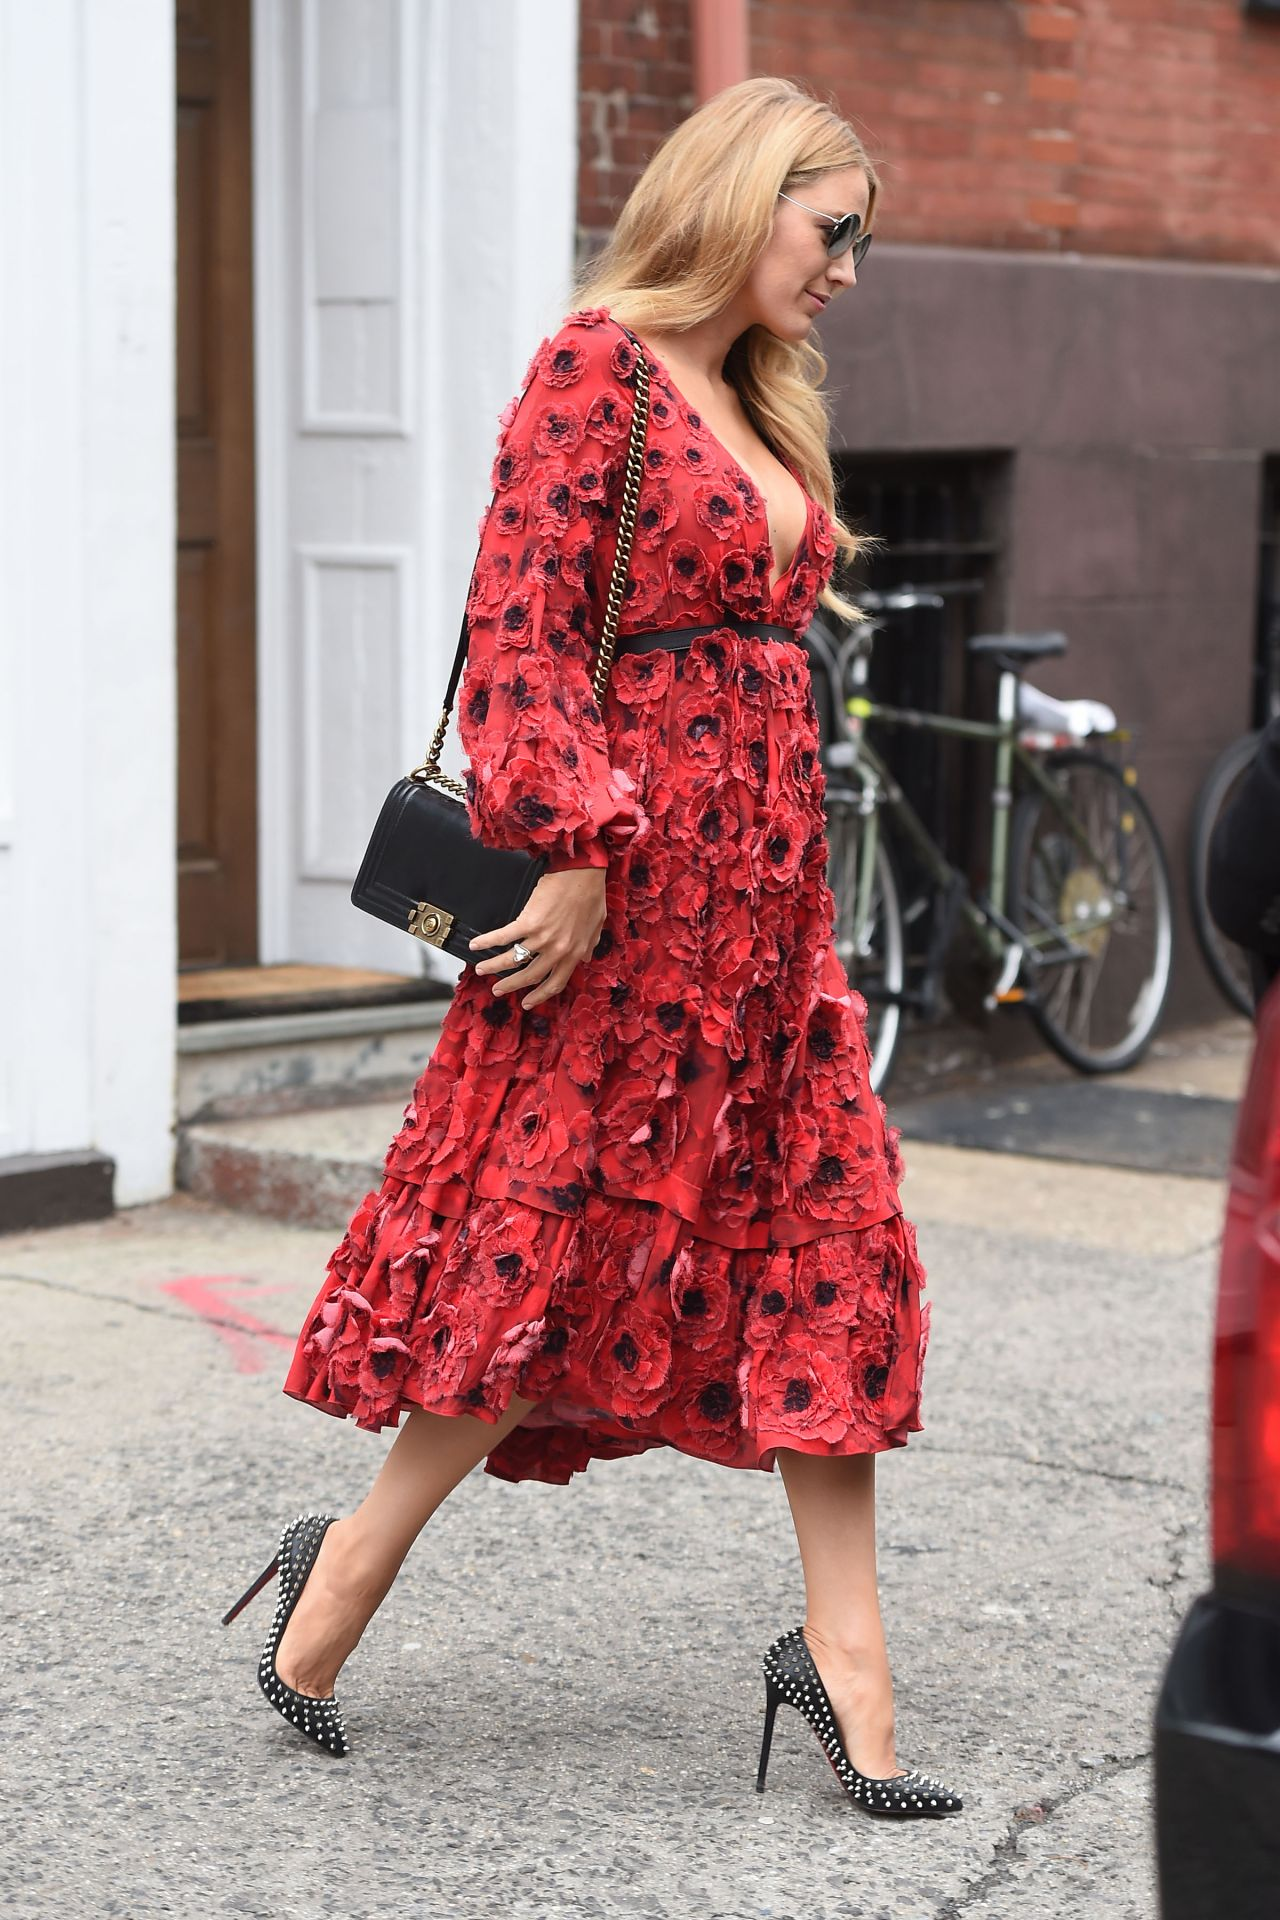 blake-lively-style-leaving-her-hotel-and-shopping-in-new-york-city-ny-2-17-2016-8